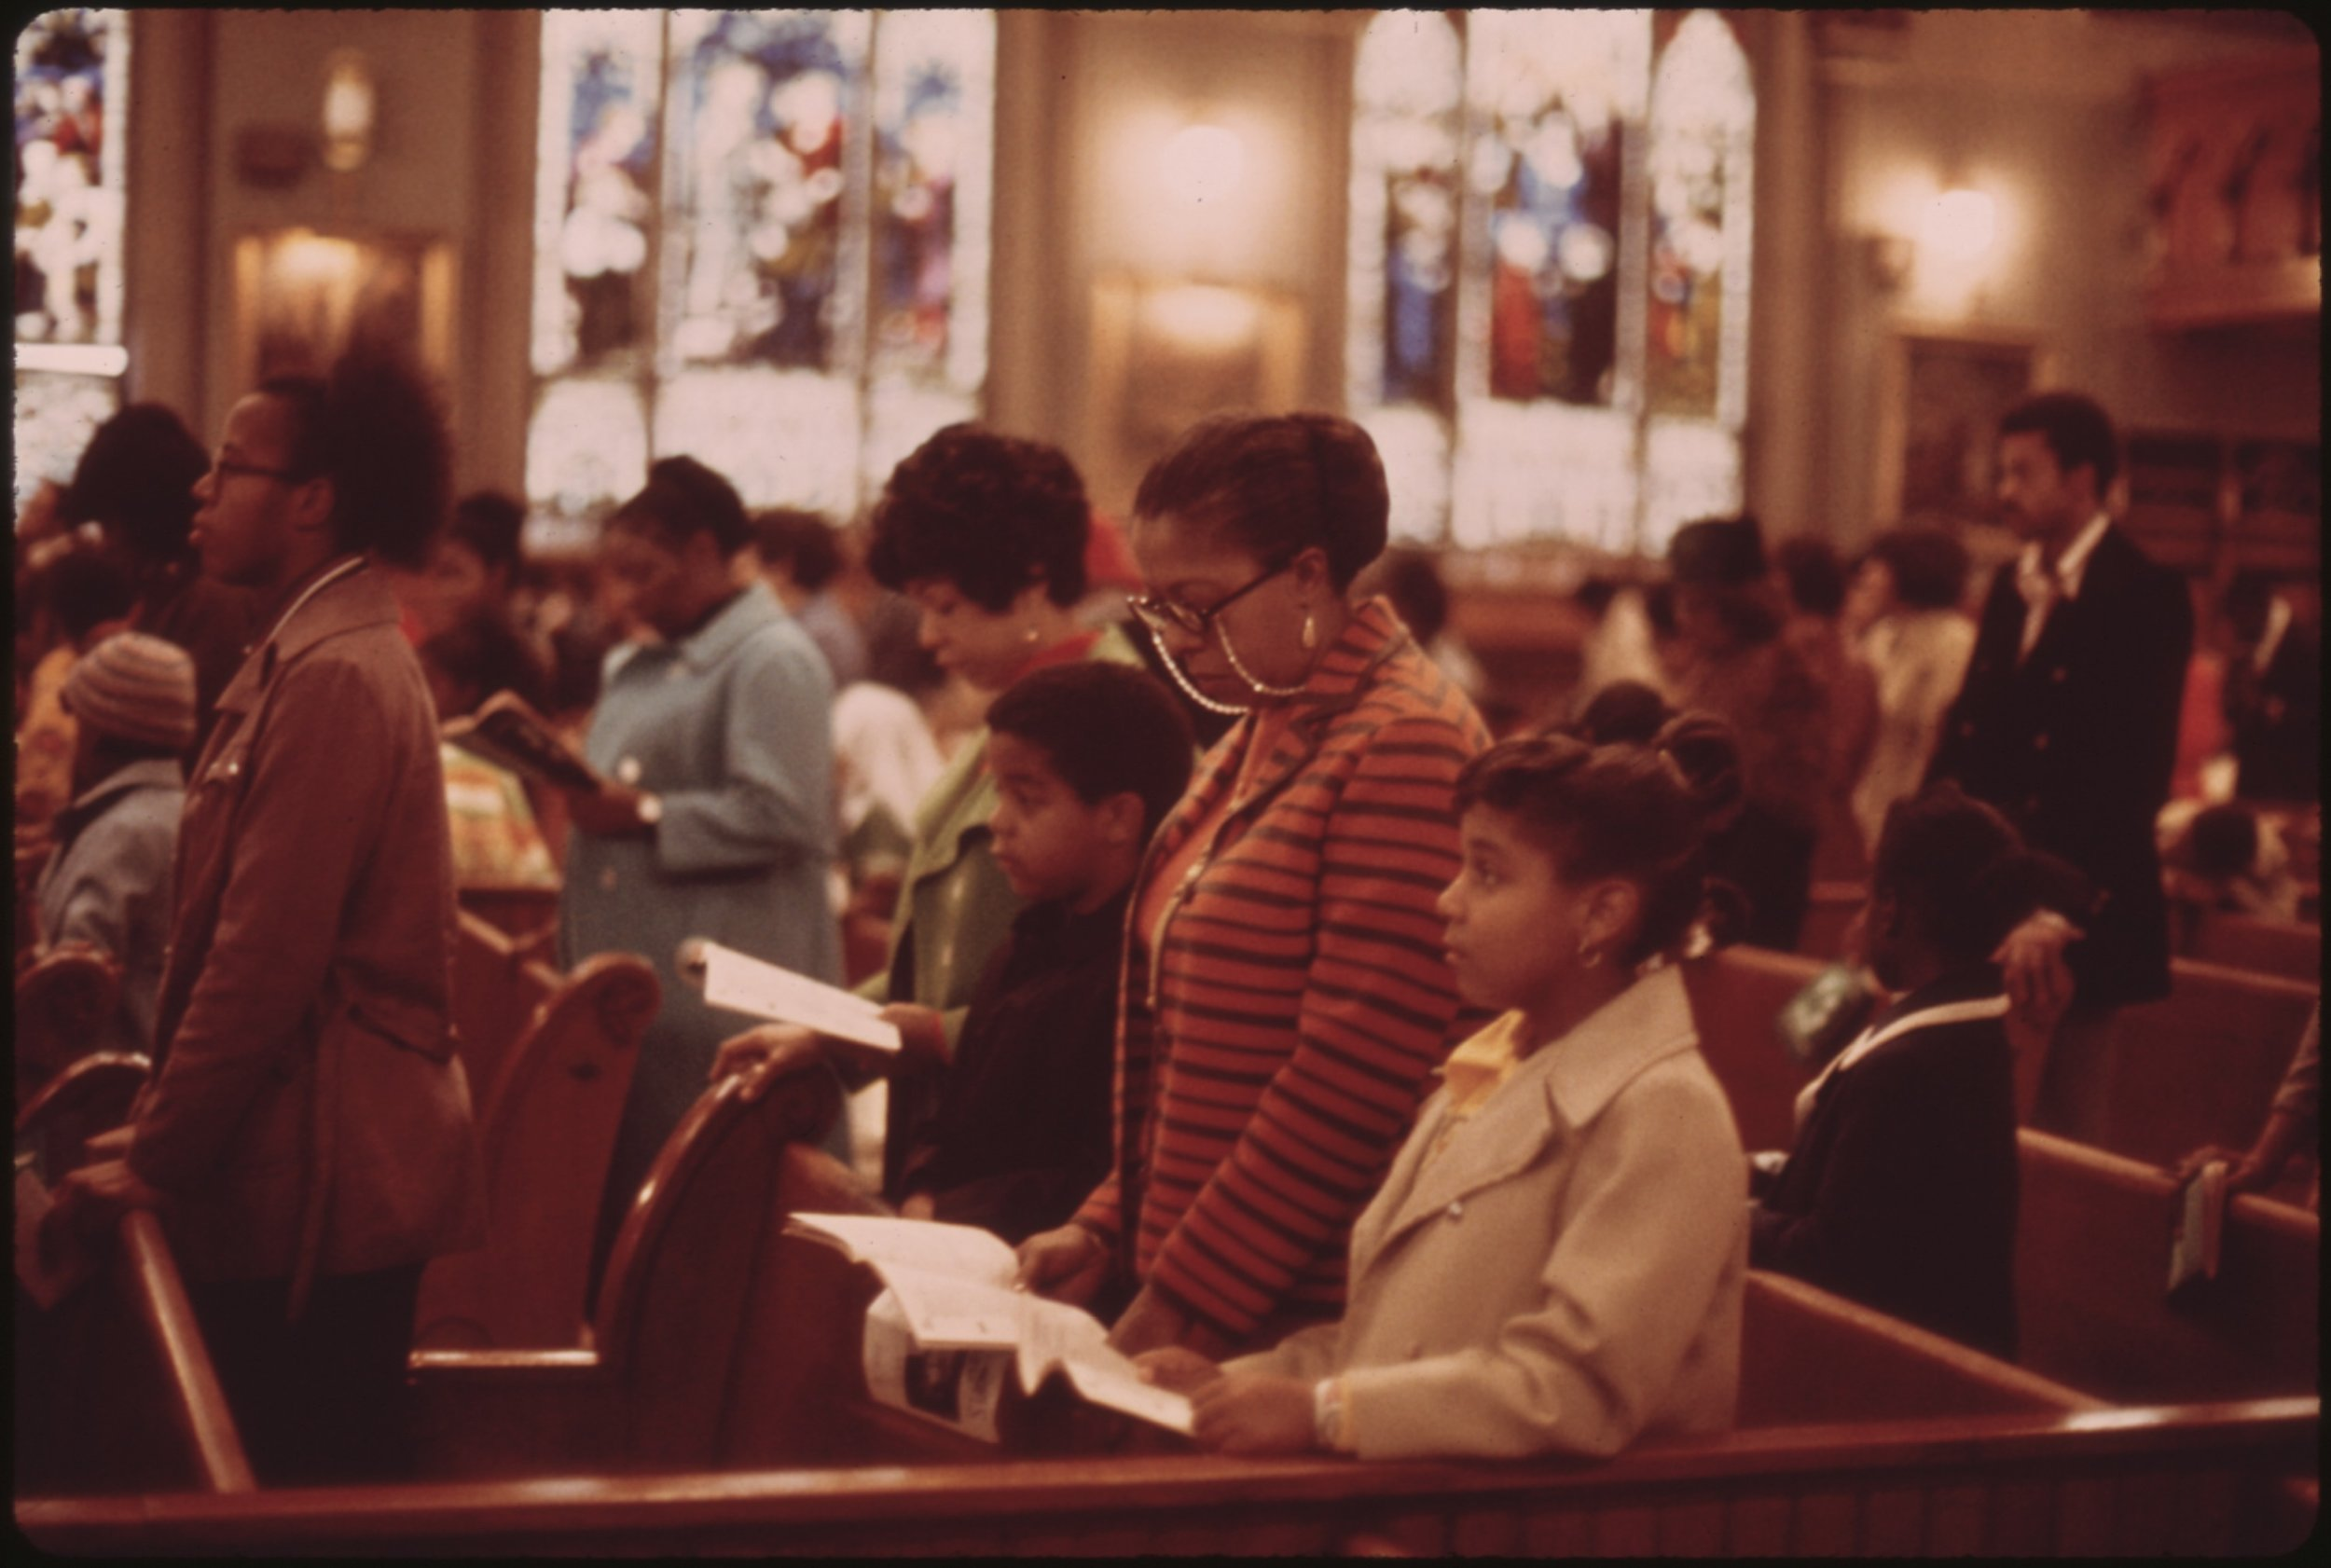 WORSHIPPERS_AT_HOLY_ANGEL_CATHOLIC_CHURCH_ON_CHICAGO'S_SOUTH_SIDE._IT_IS_THE_CITY'S_LARGEST_BLACK_CATHOLIC_CHURCH...._-_NARA_-_556238.jpg